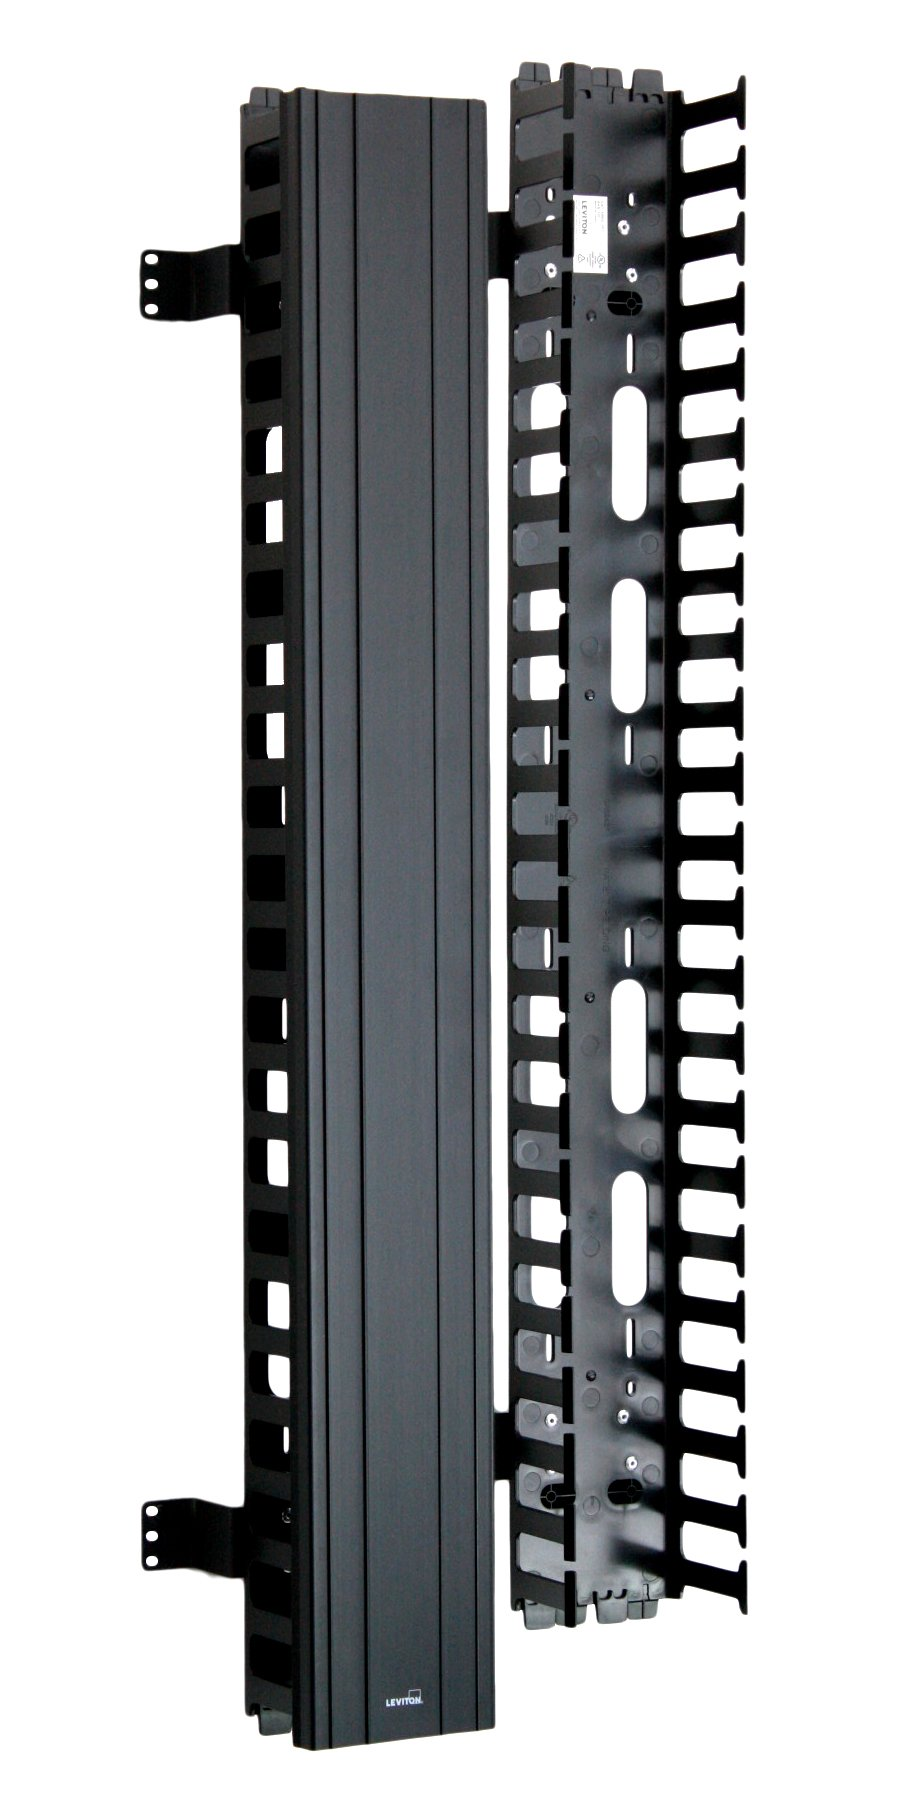 Leviton 4980L-VFO Vertical Front Only Cable Management, 5-inch Channel by 80-inch Long, Black Snap-On Cover